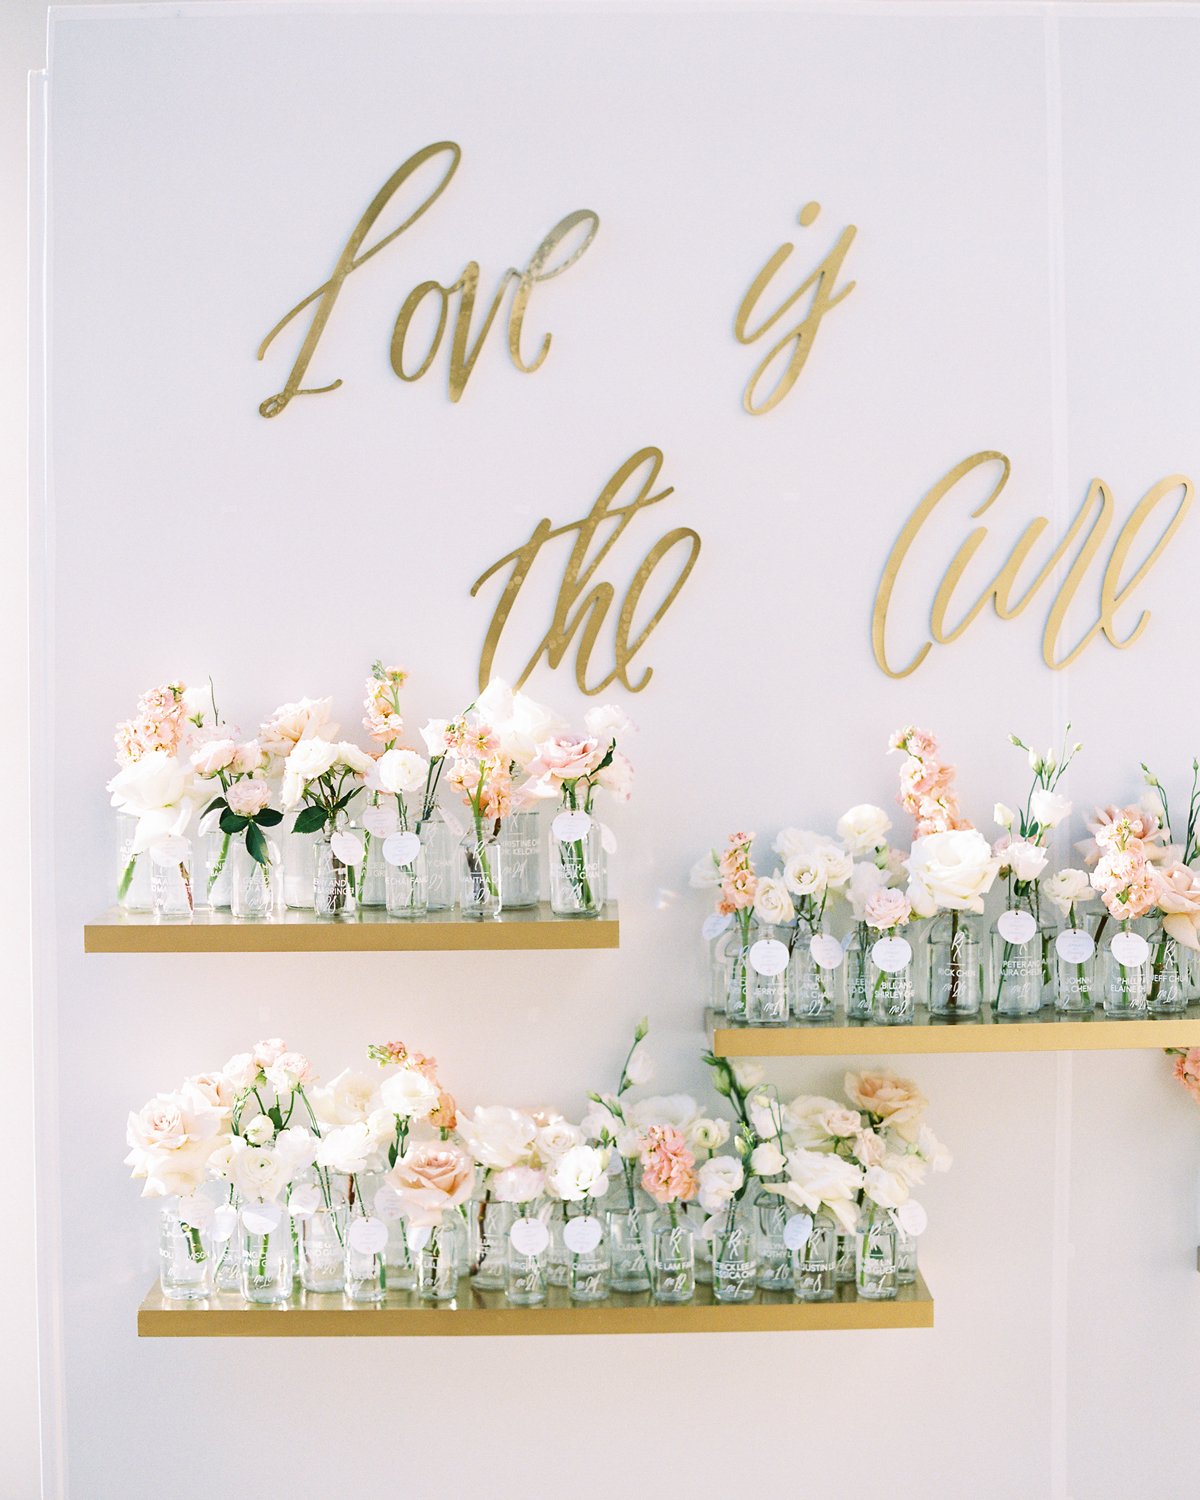 short stemmed floral arrangements in glass jars on floating shelves